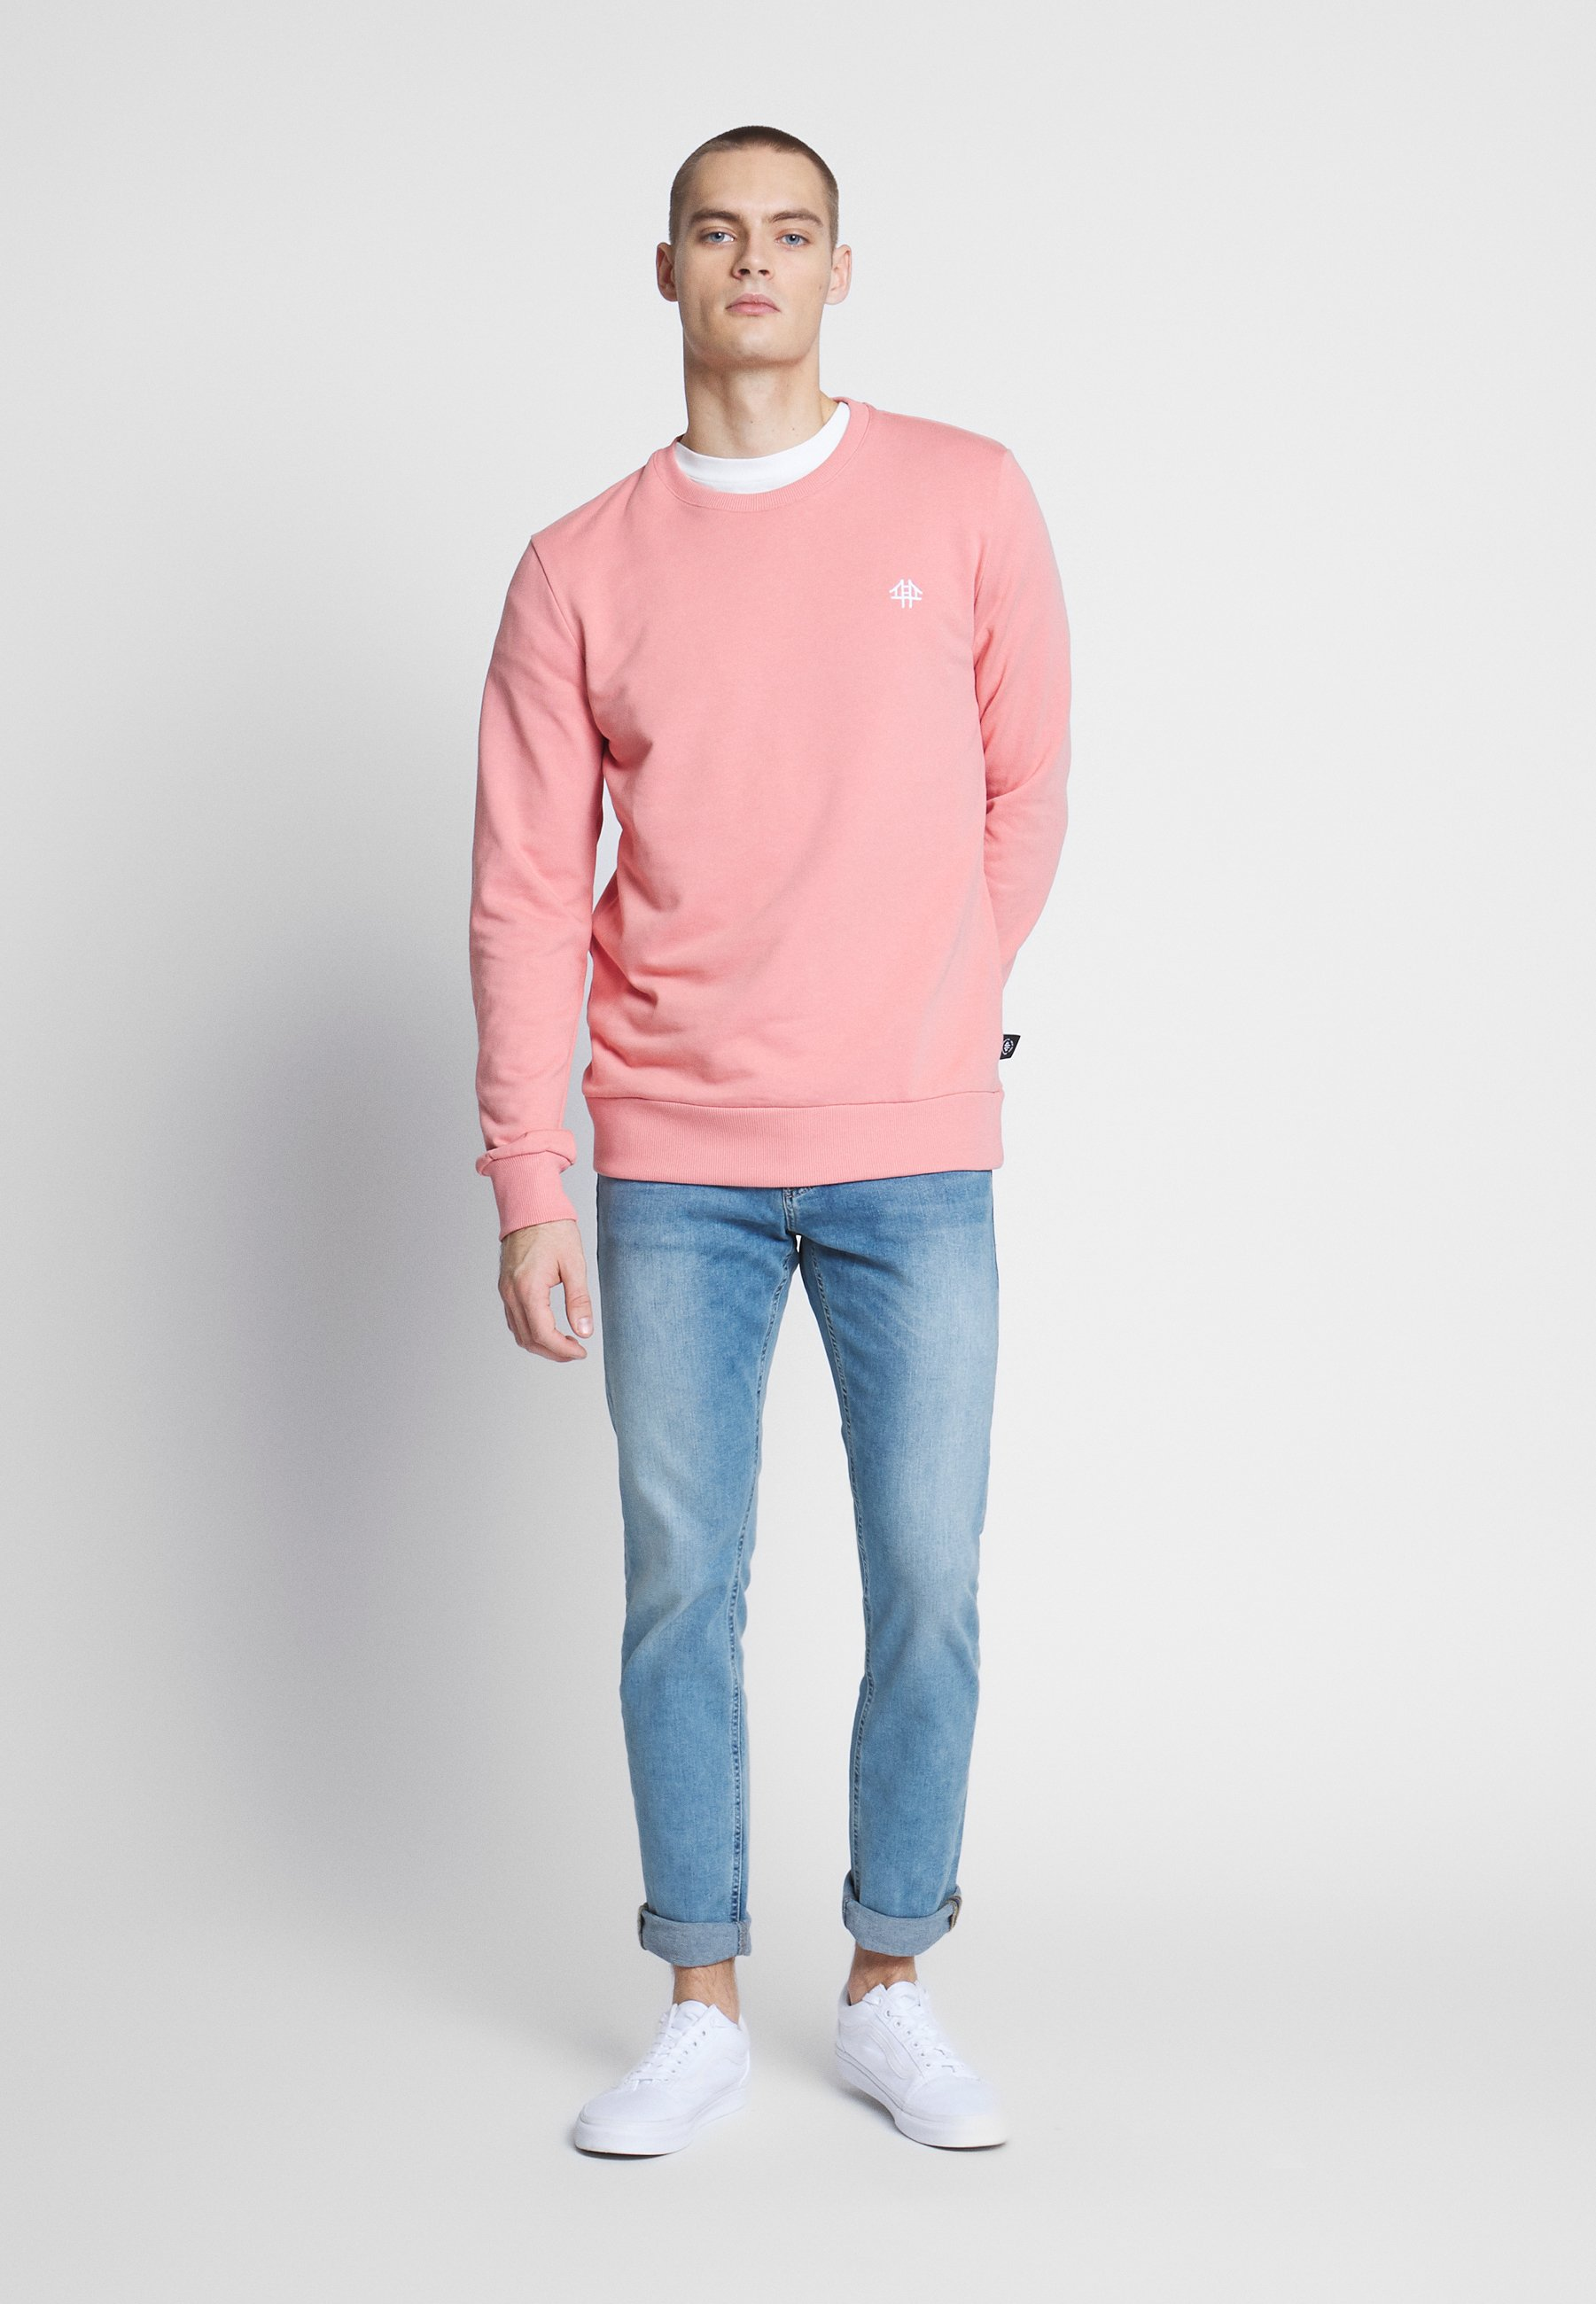 Brooklyn Supply Co. Relaxed Embroidery Sweater - Pink